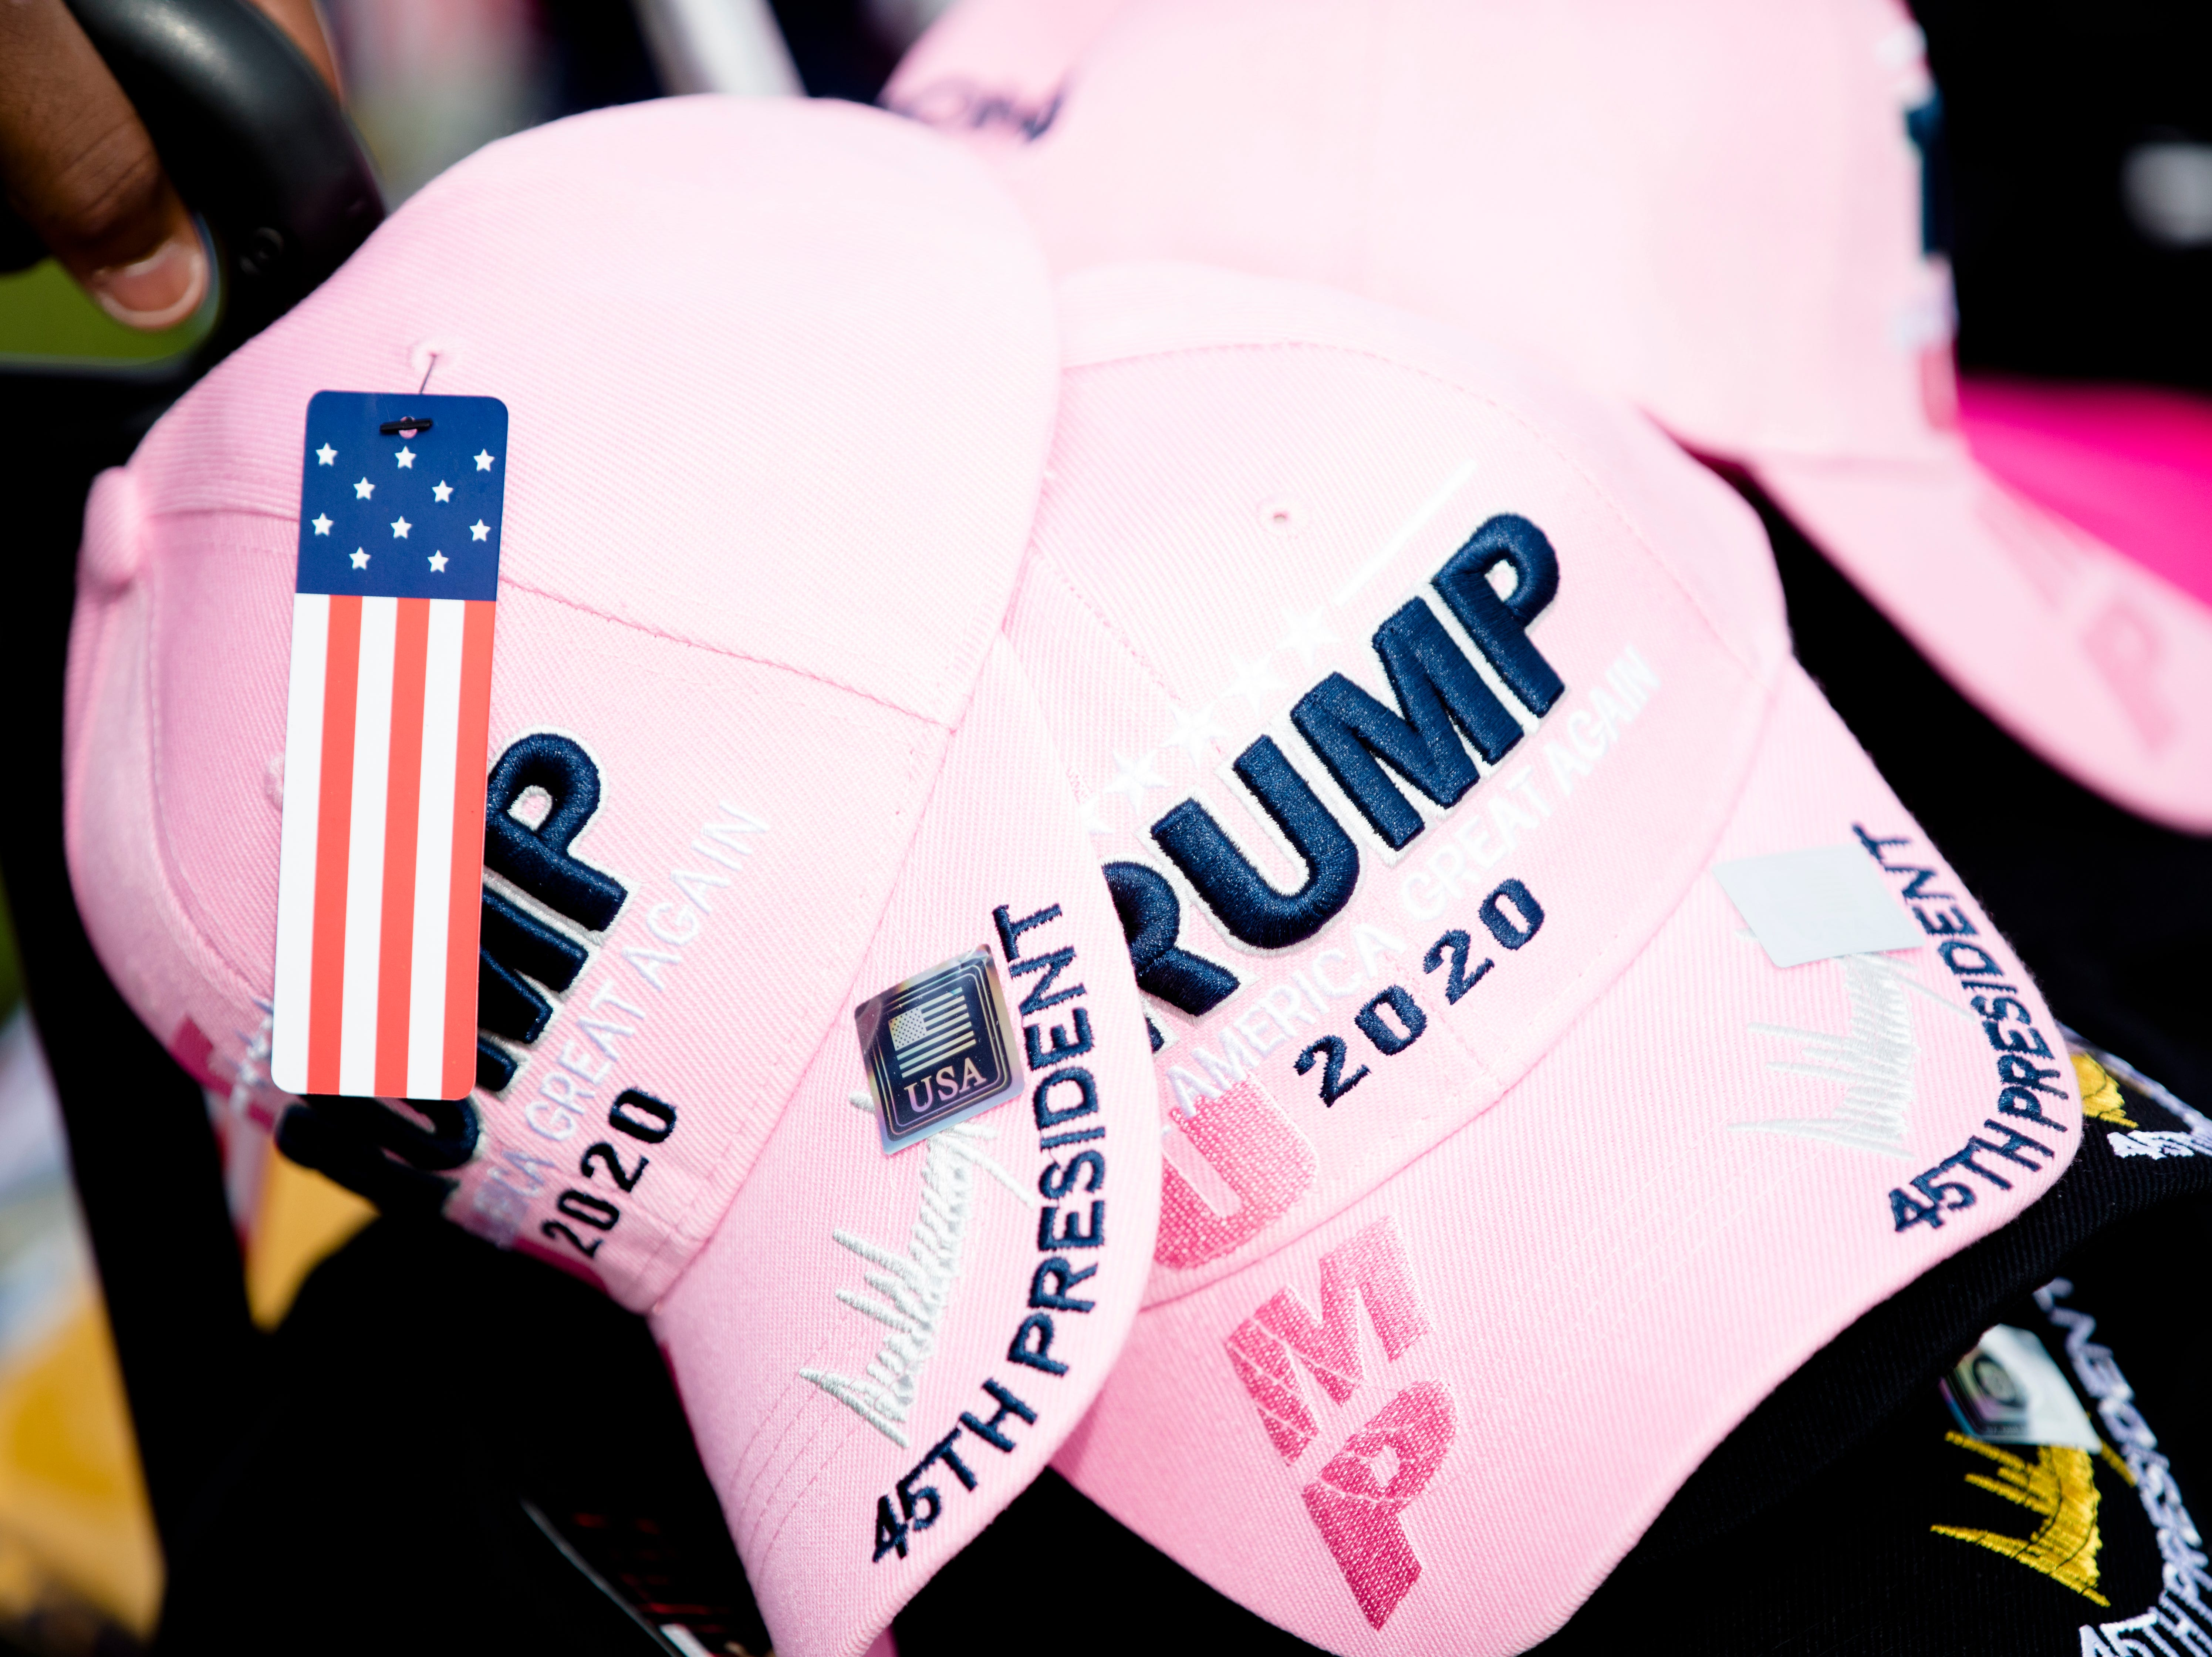 Trump hats for sale in the line to President Donald J. Trump's Make America Great Again Rally in Lebanon, Ohio, on Friday, Oct. 12, 2018.